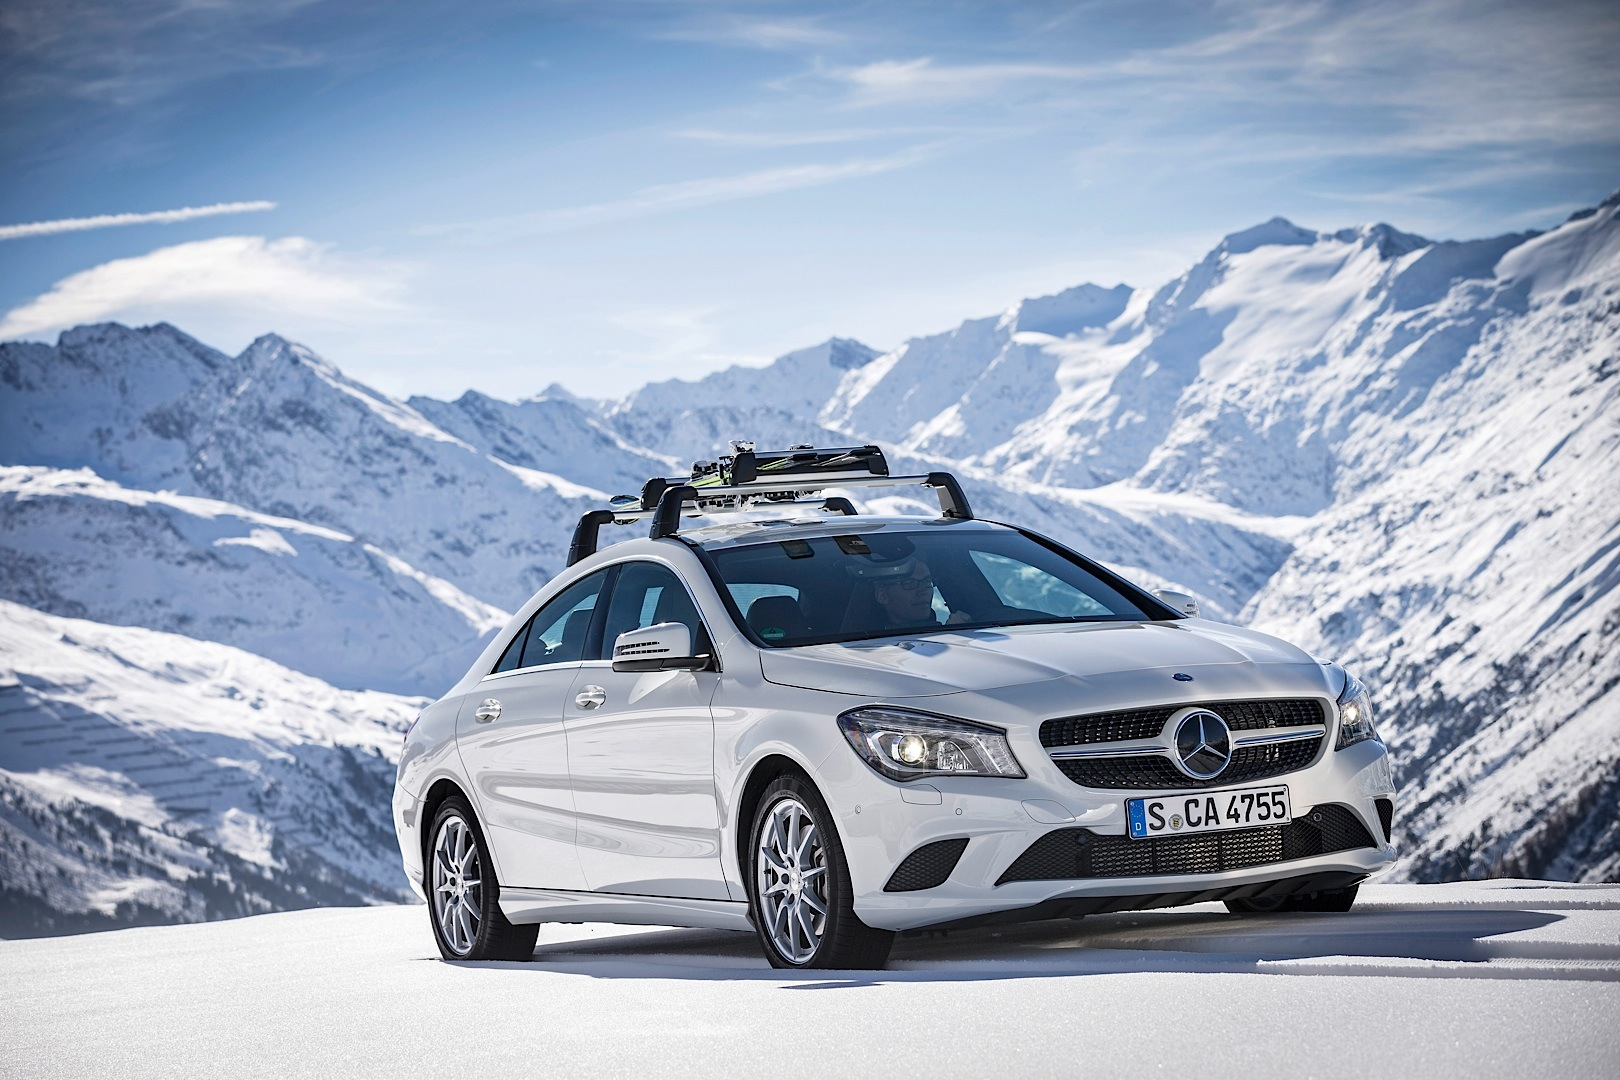 Mercedes Benz Launches 2013 Winter Accessories Autoevolution